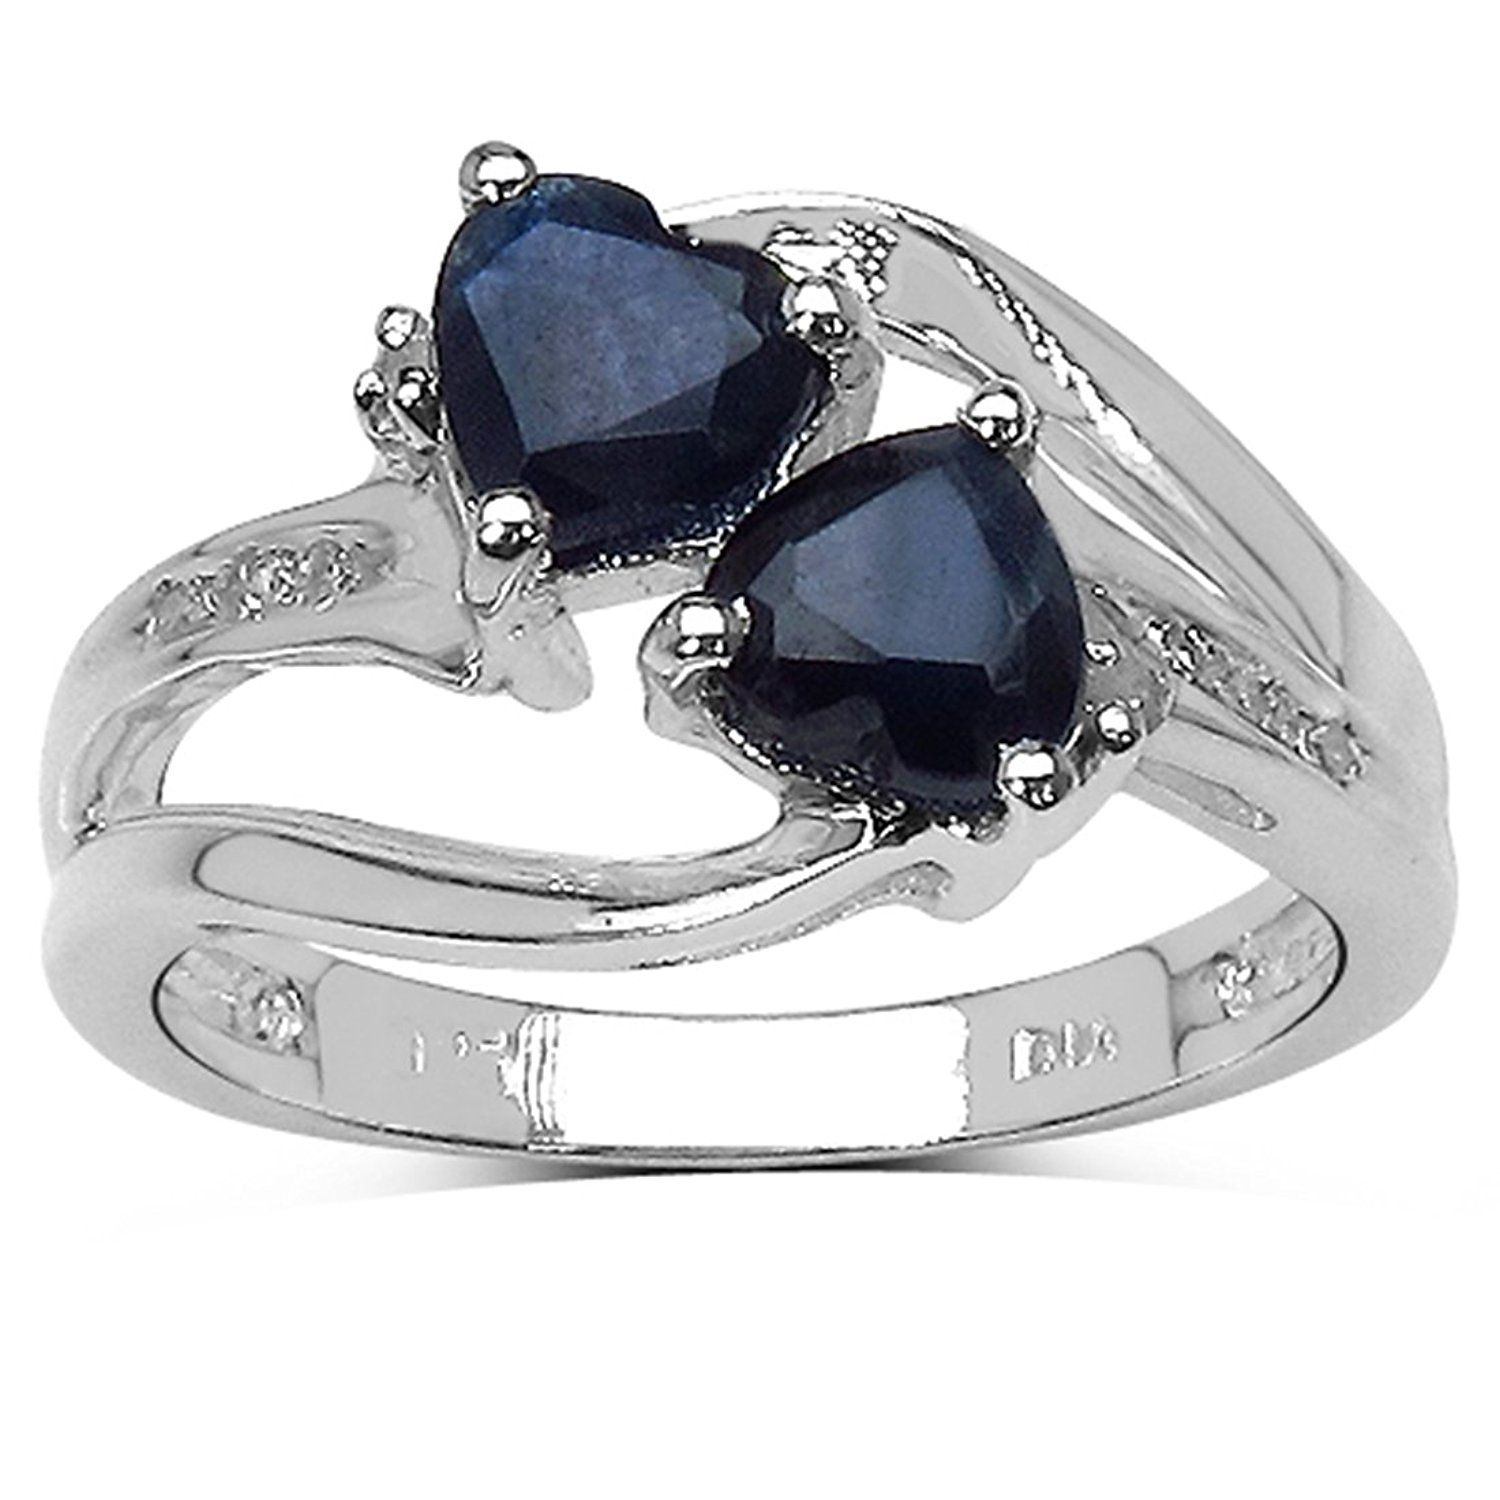 Silver Plated Claddagh Heart With Sea Blue Cubic Zirconia Ring Sizes J to W